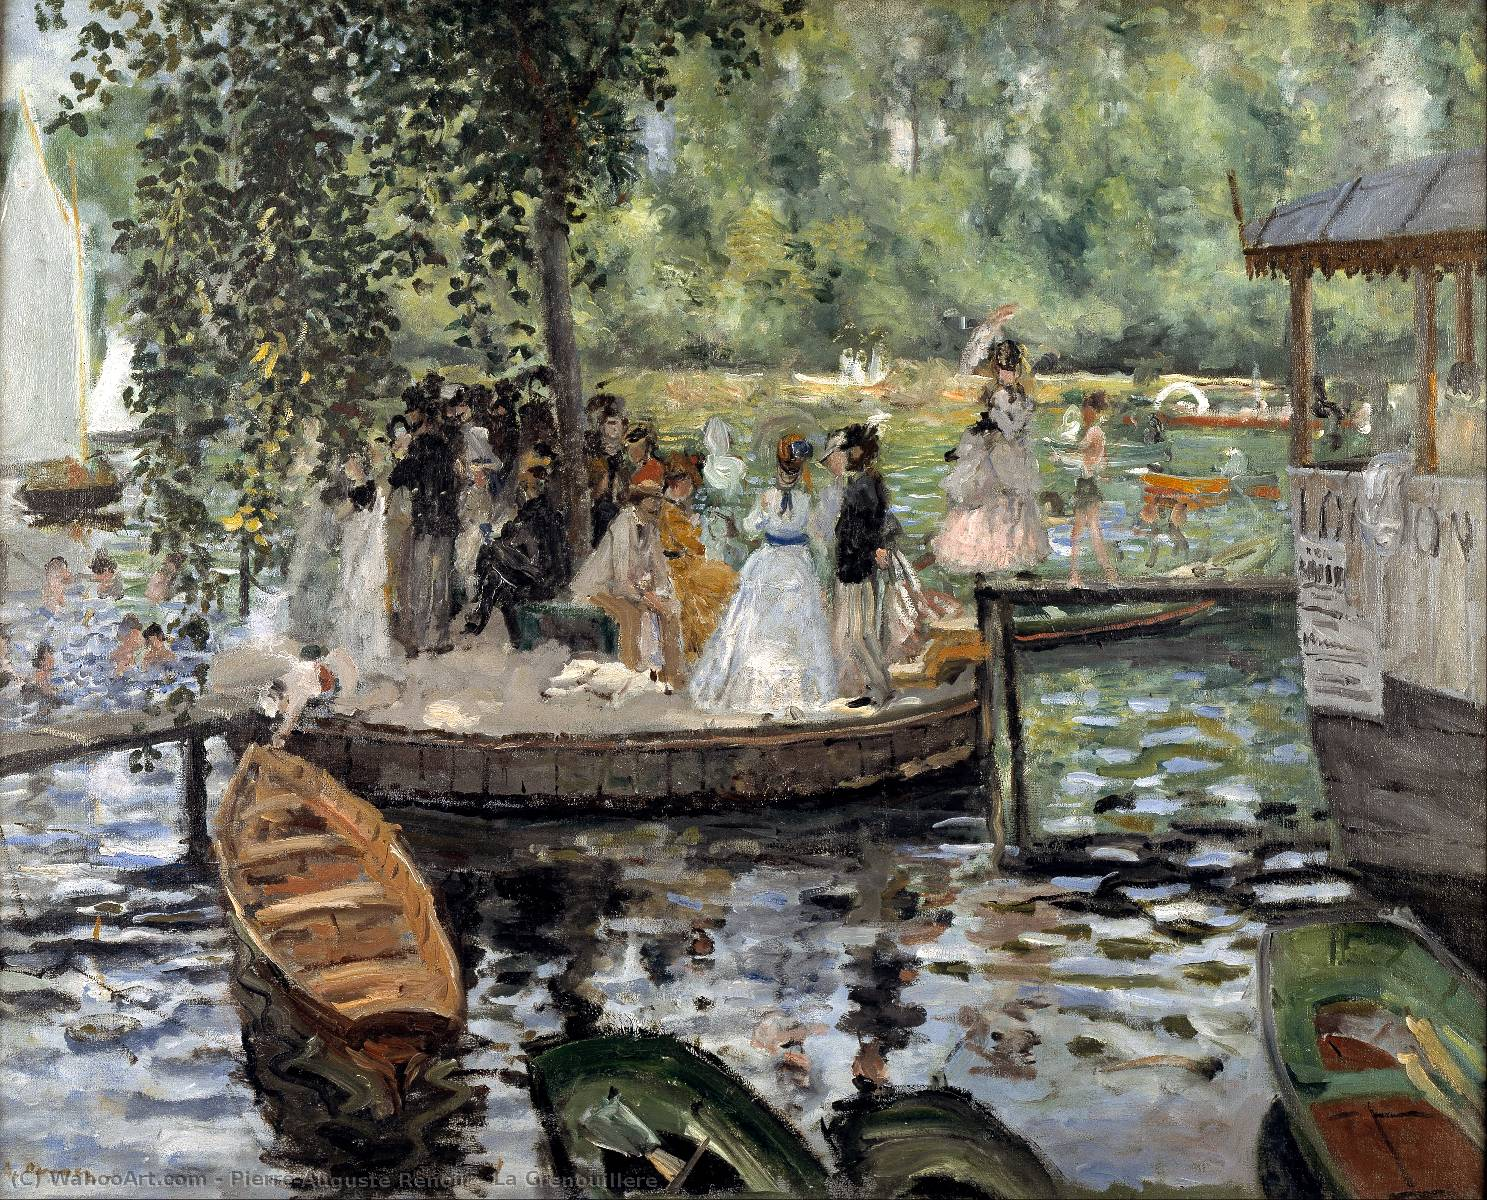 La Grenouillere, Oil On Canvas by Pierre-Auguste Renoir (1841-1919, France)